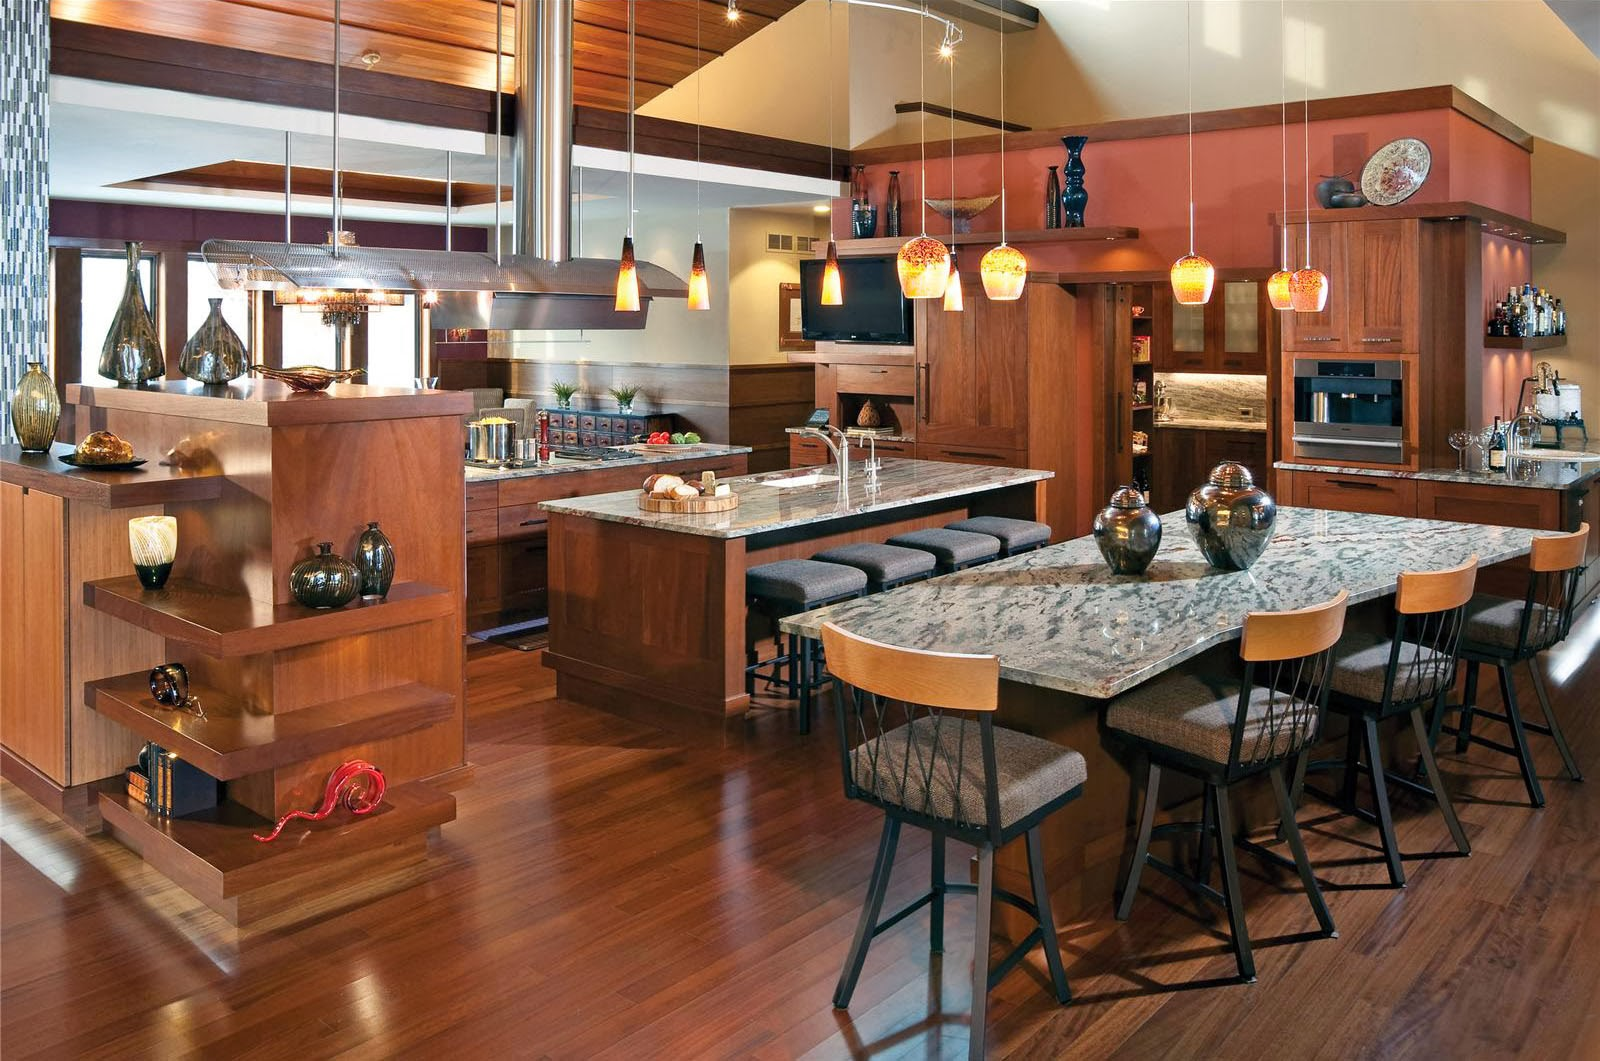 American Kitchen And Living Room Design - American open kitchens